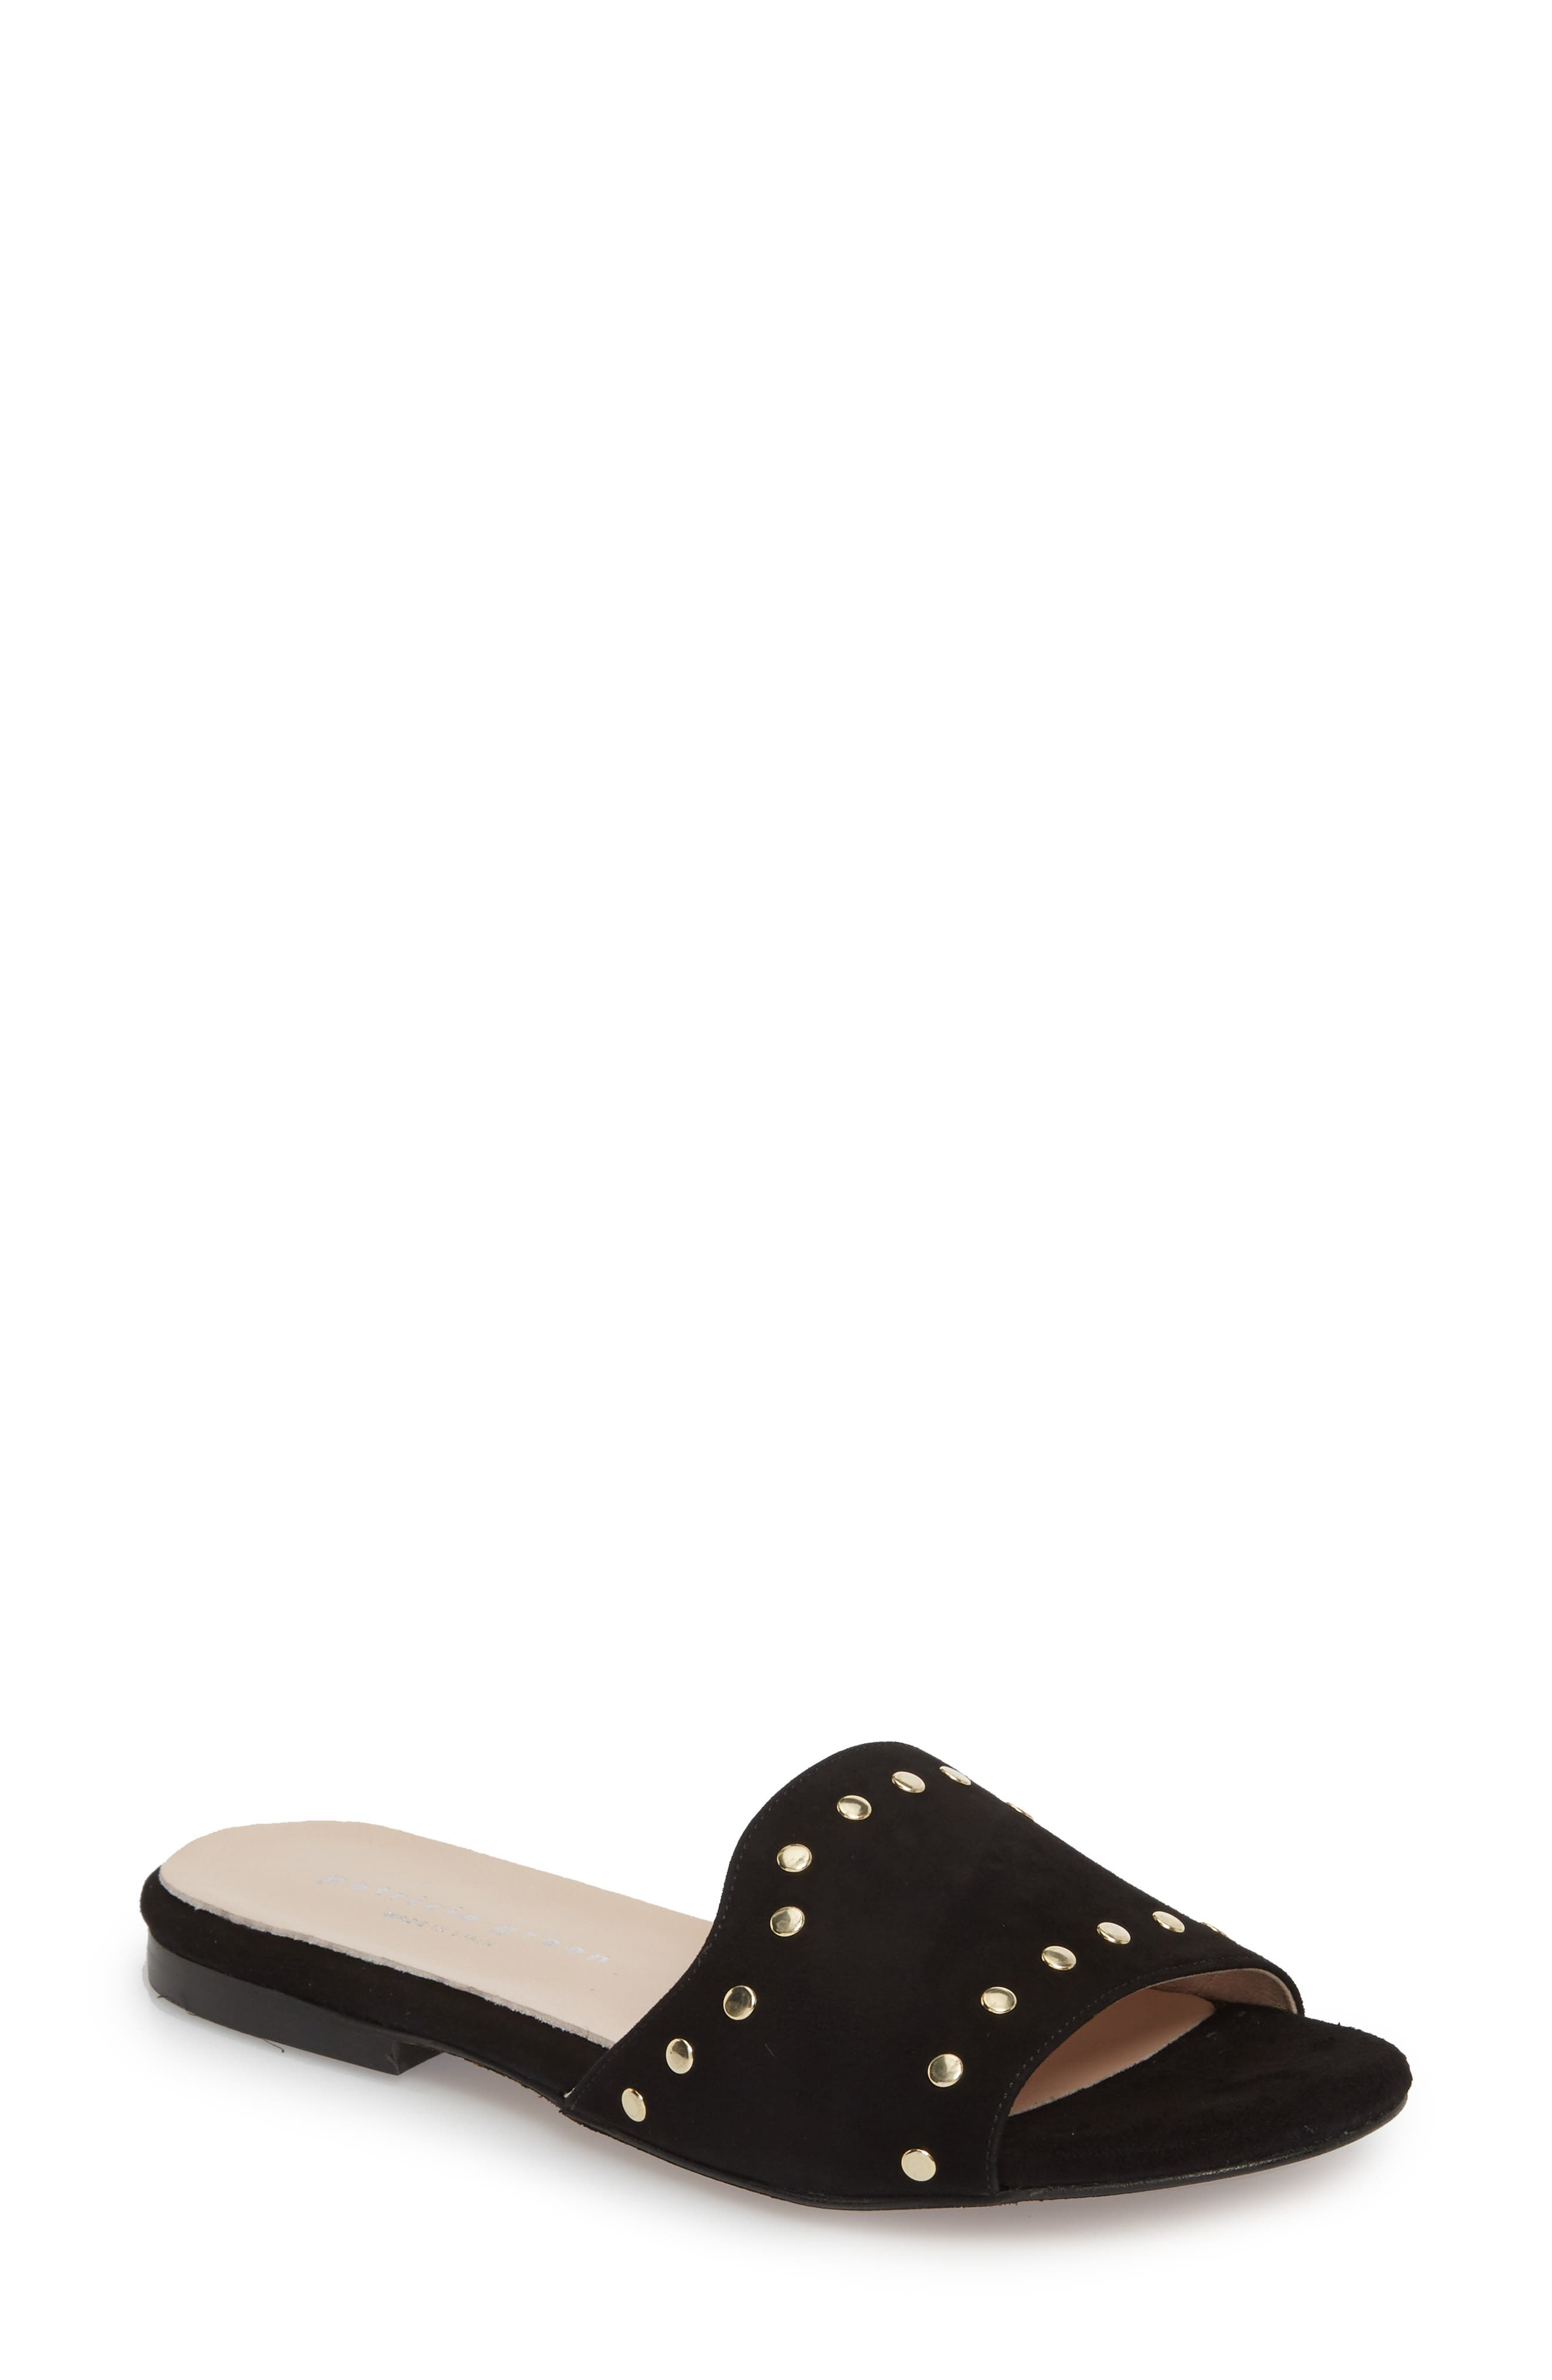 Mira Slide Sandal,                         Main,                         color, BLACK SUEDE